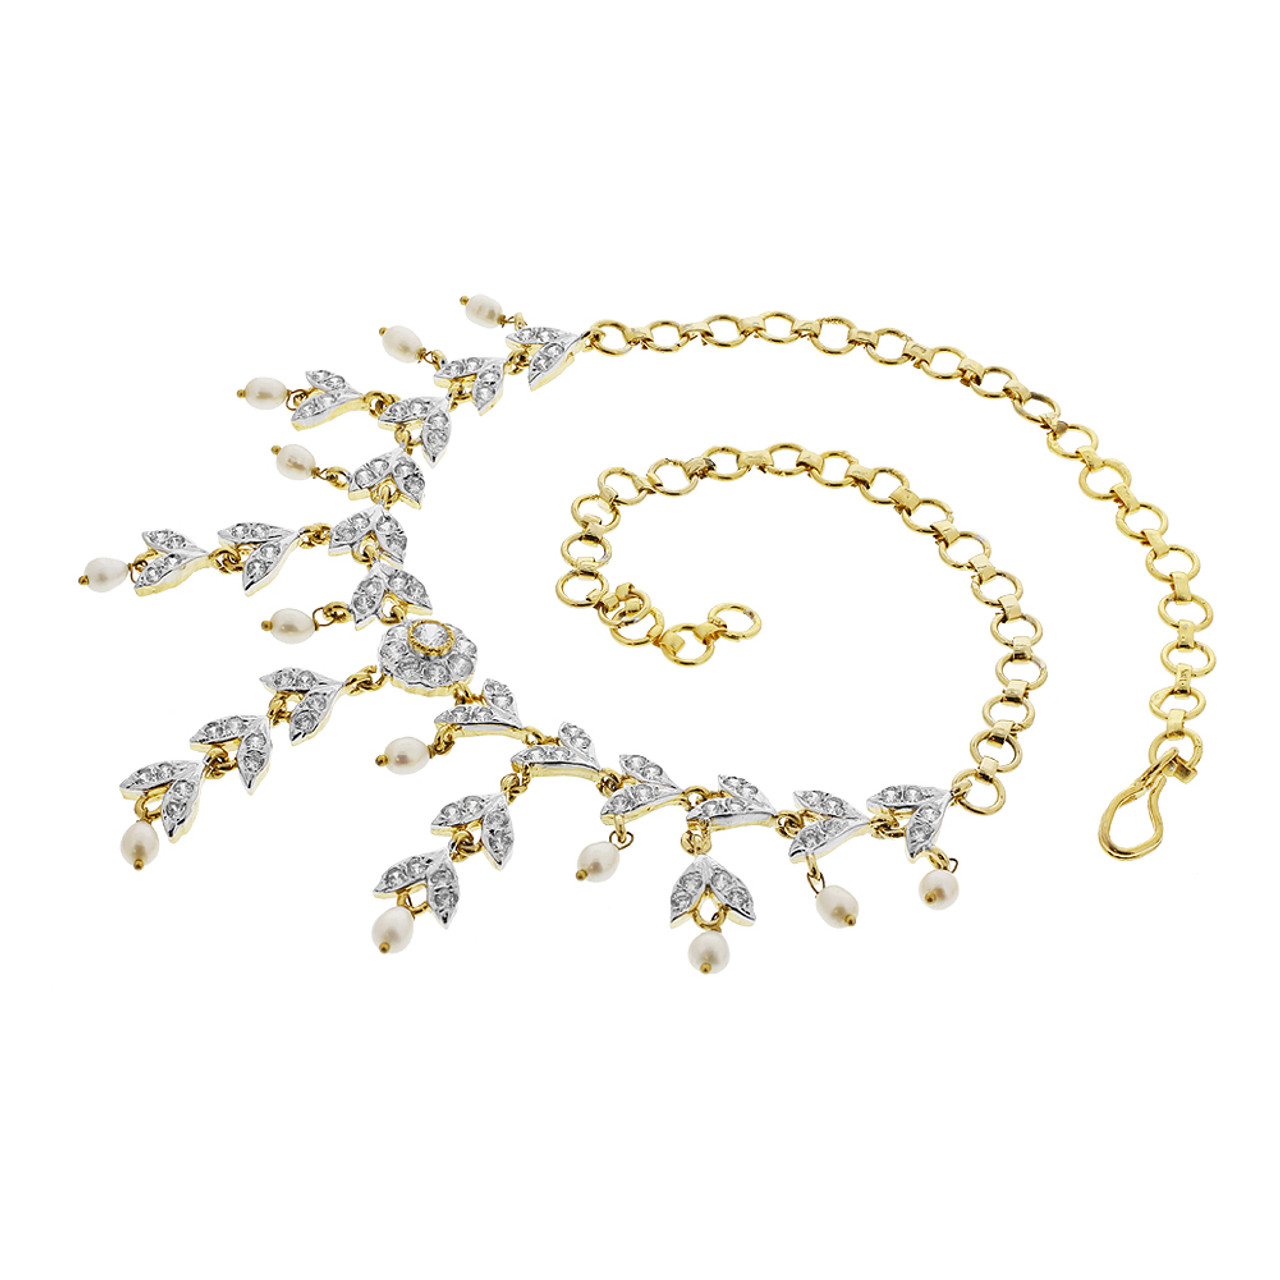 Gold Plated White Pearls and Glass Stones Earrings and link Chain Necklace Set